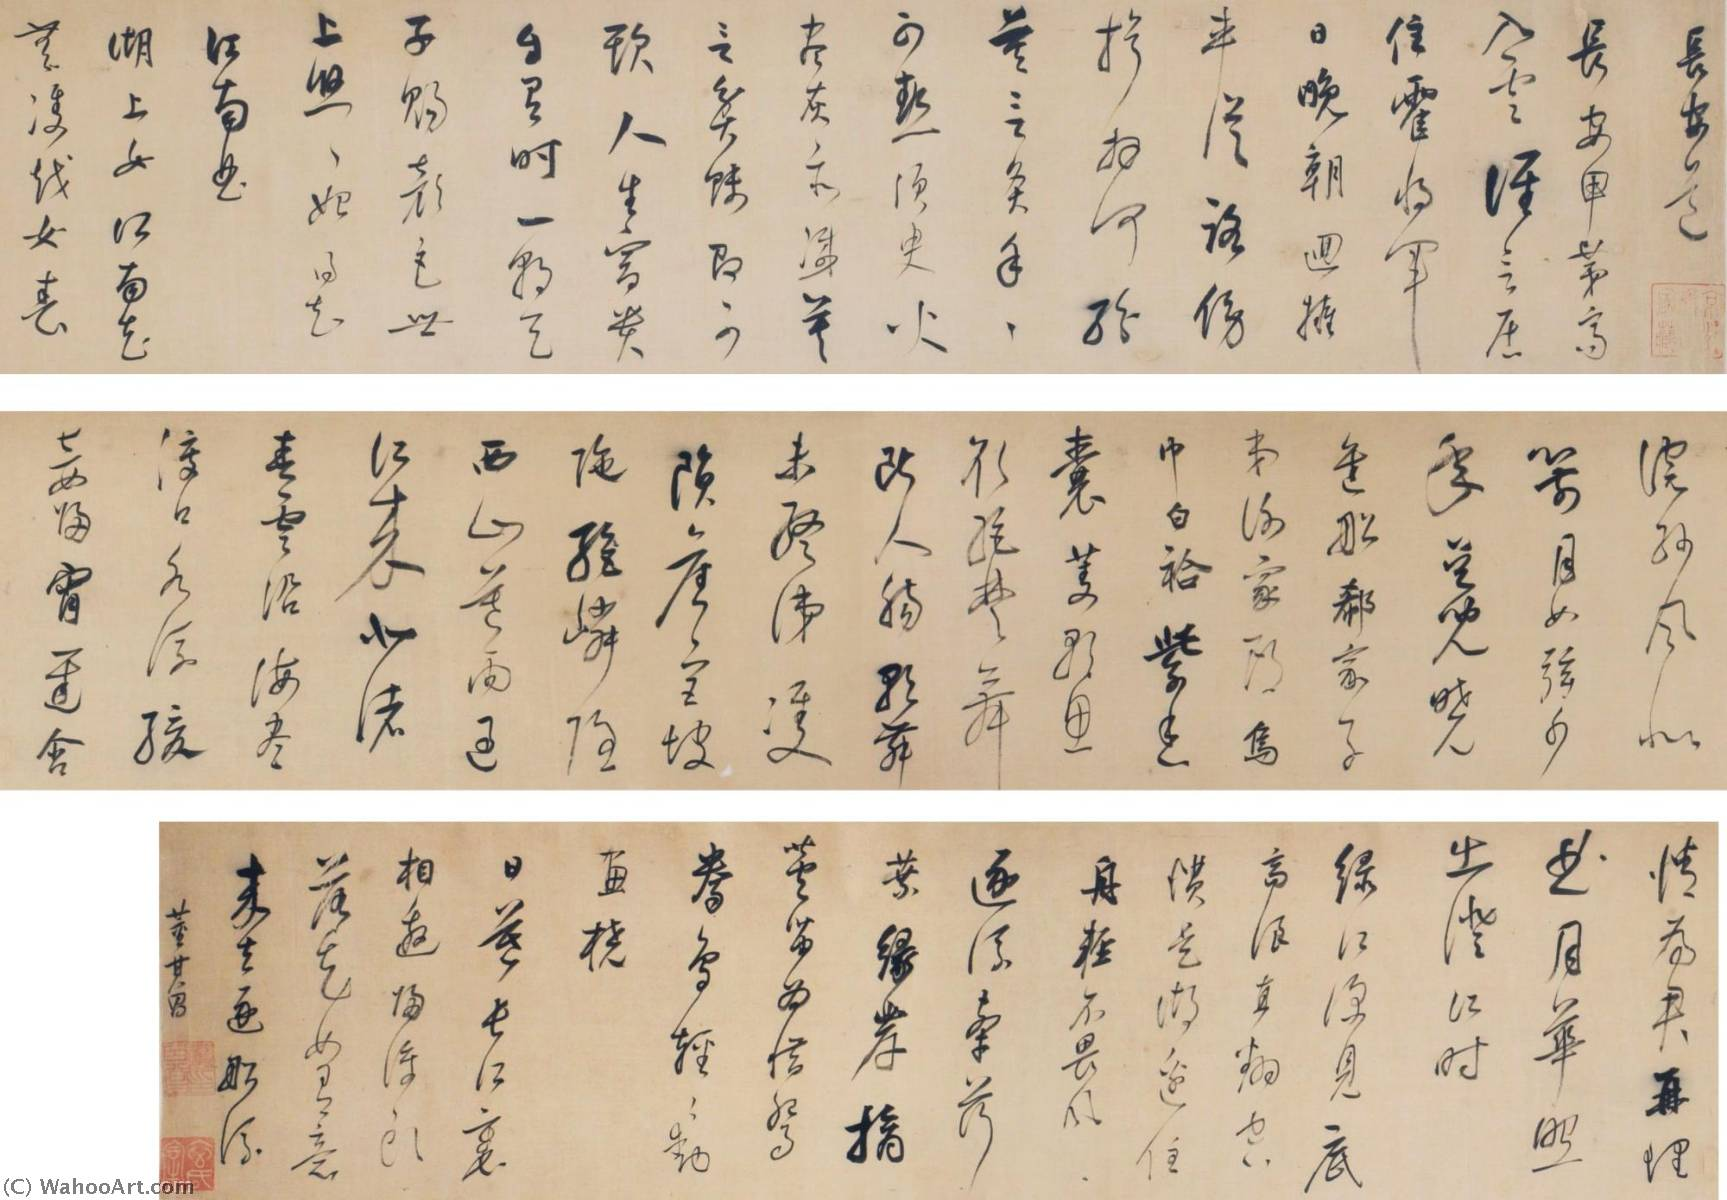 Order Museum Quality Reproductions : CALLIGRAPHY IN CURSIVE SCRIPT by Dong Qichang (1555-1636) | ArtsDot.com